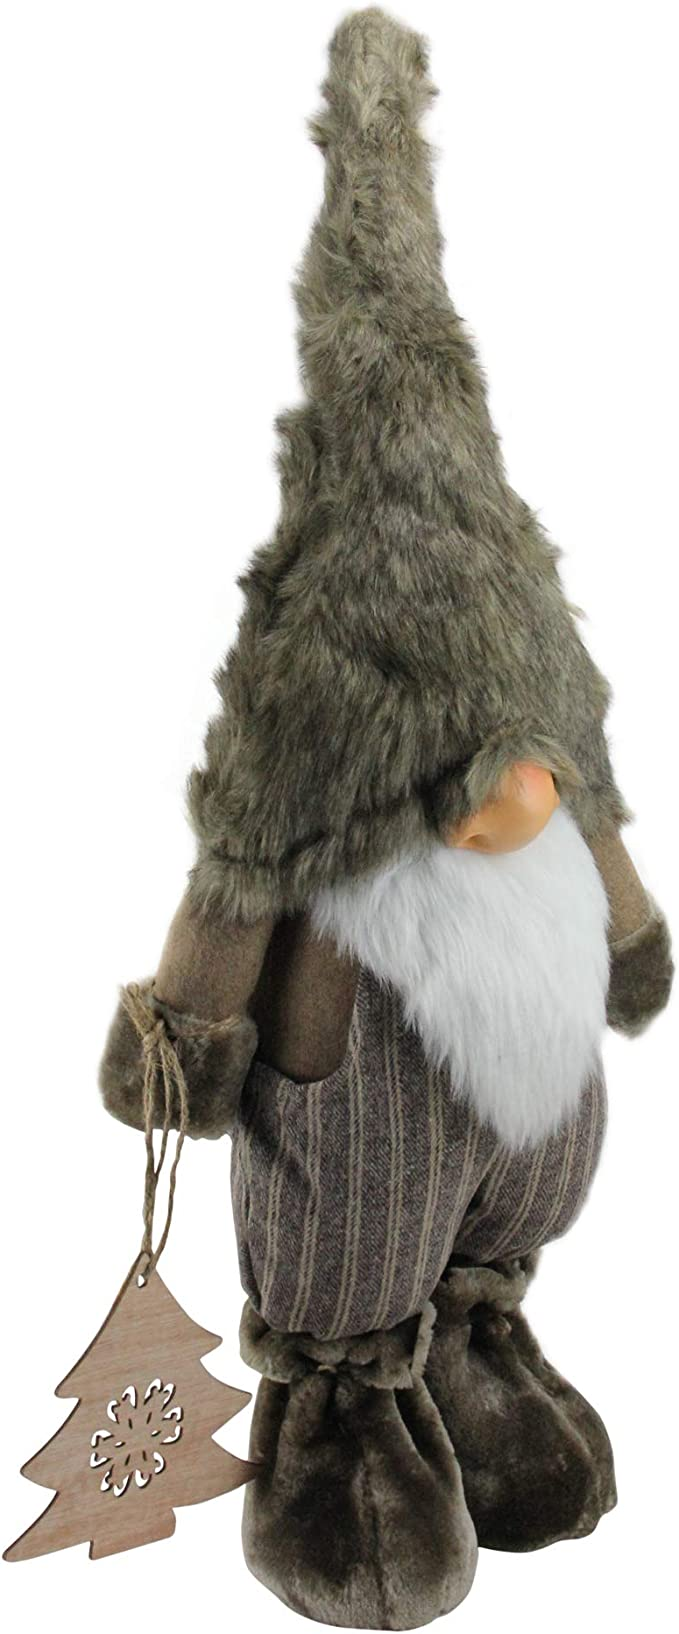 Amazon Com Northlight 33 Large Woodland Gnome With Striped Pants Holding Christmas Tree Brown Home Kitchen